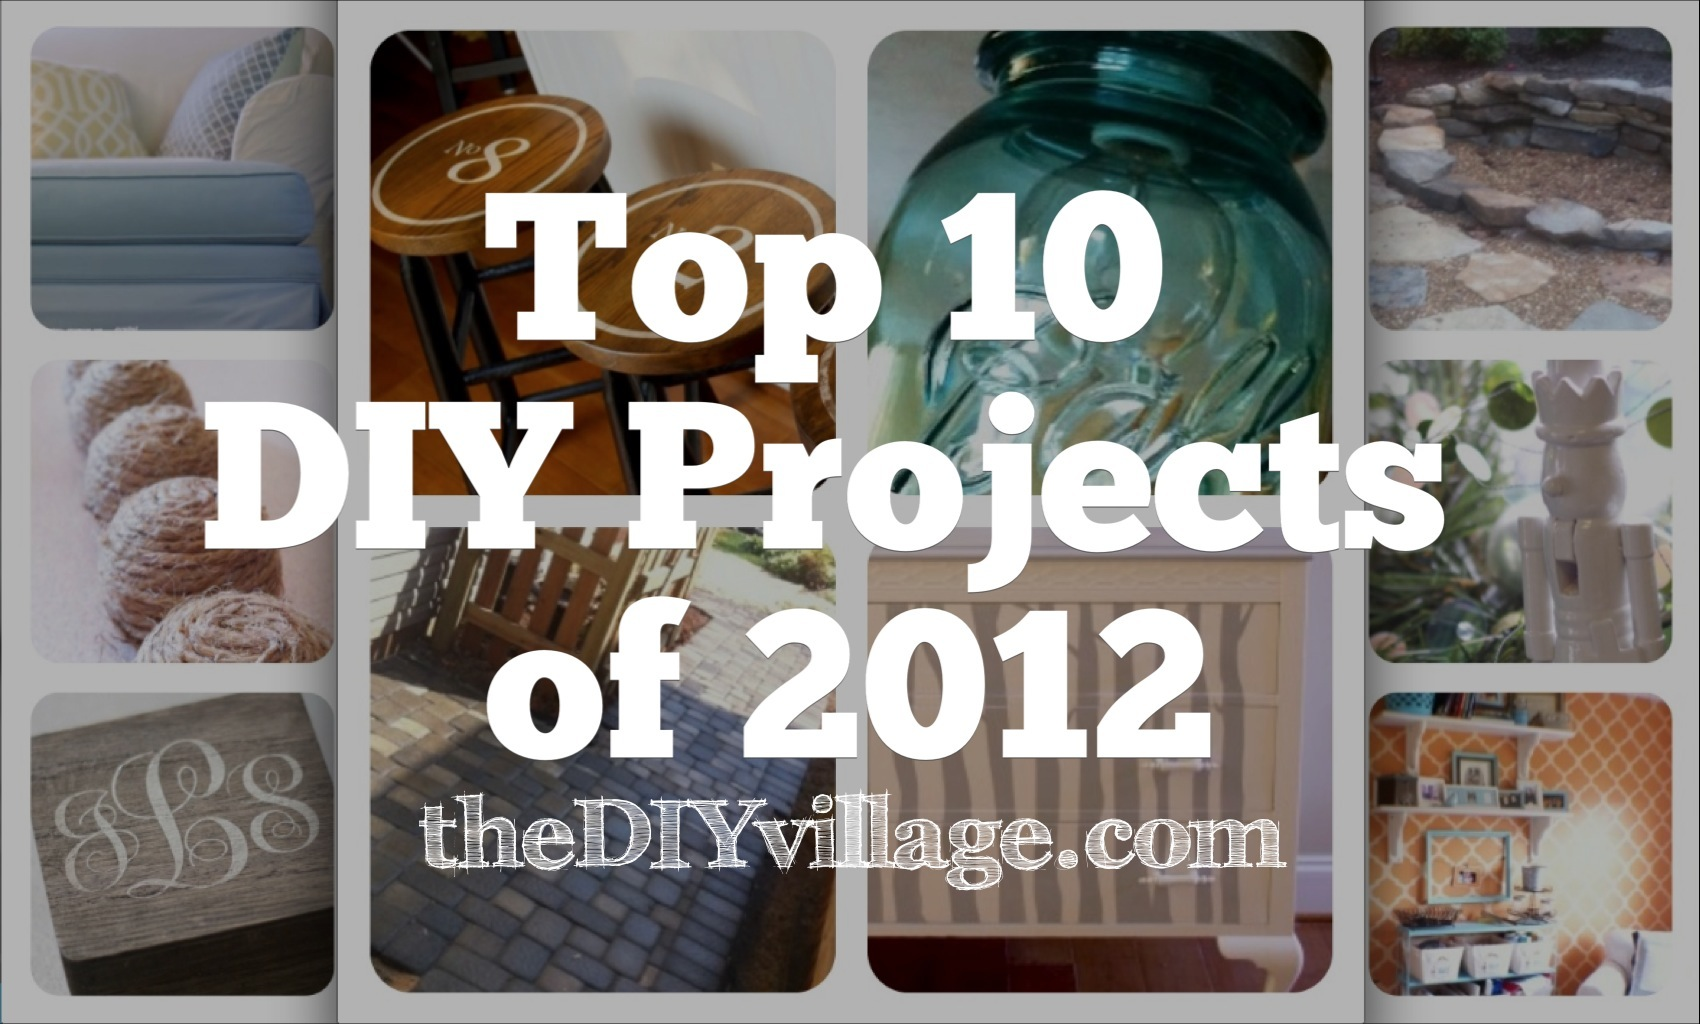 TOP 10 Do it Yourself Projects of 2012! by: theDIYvillage.com